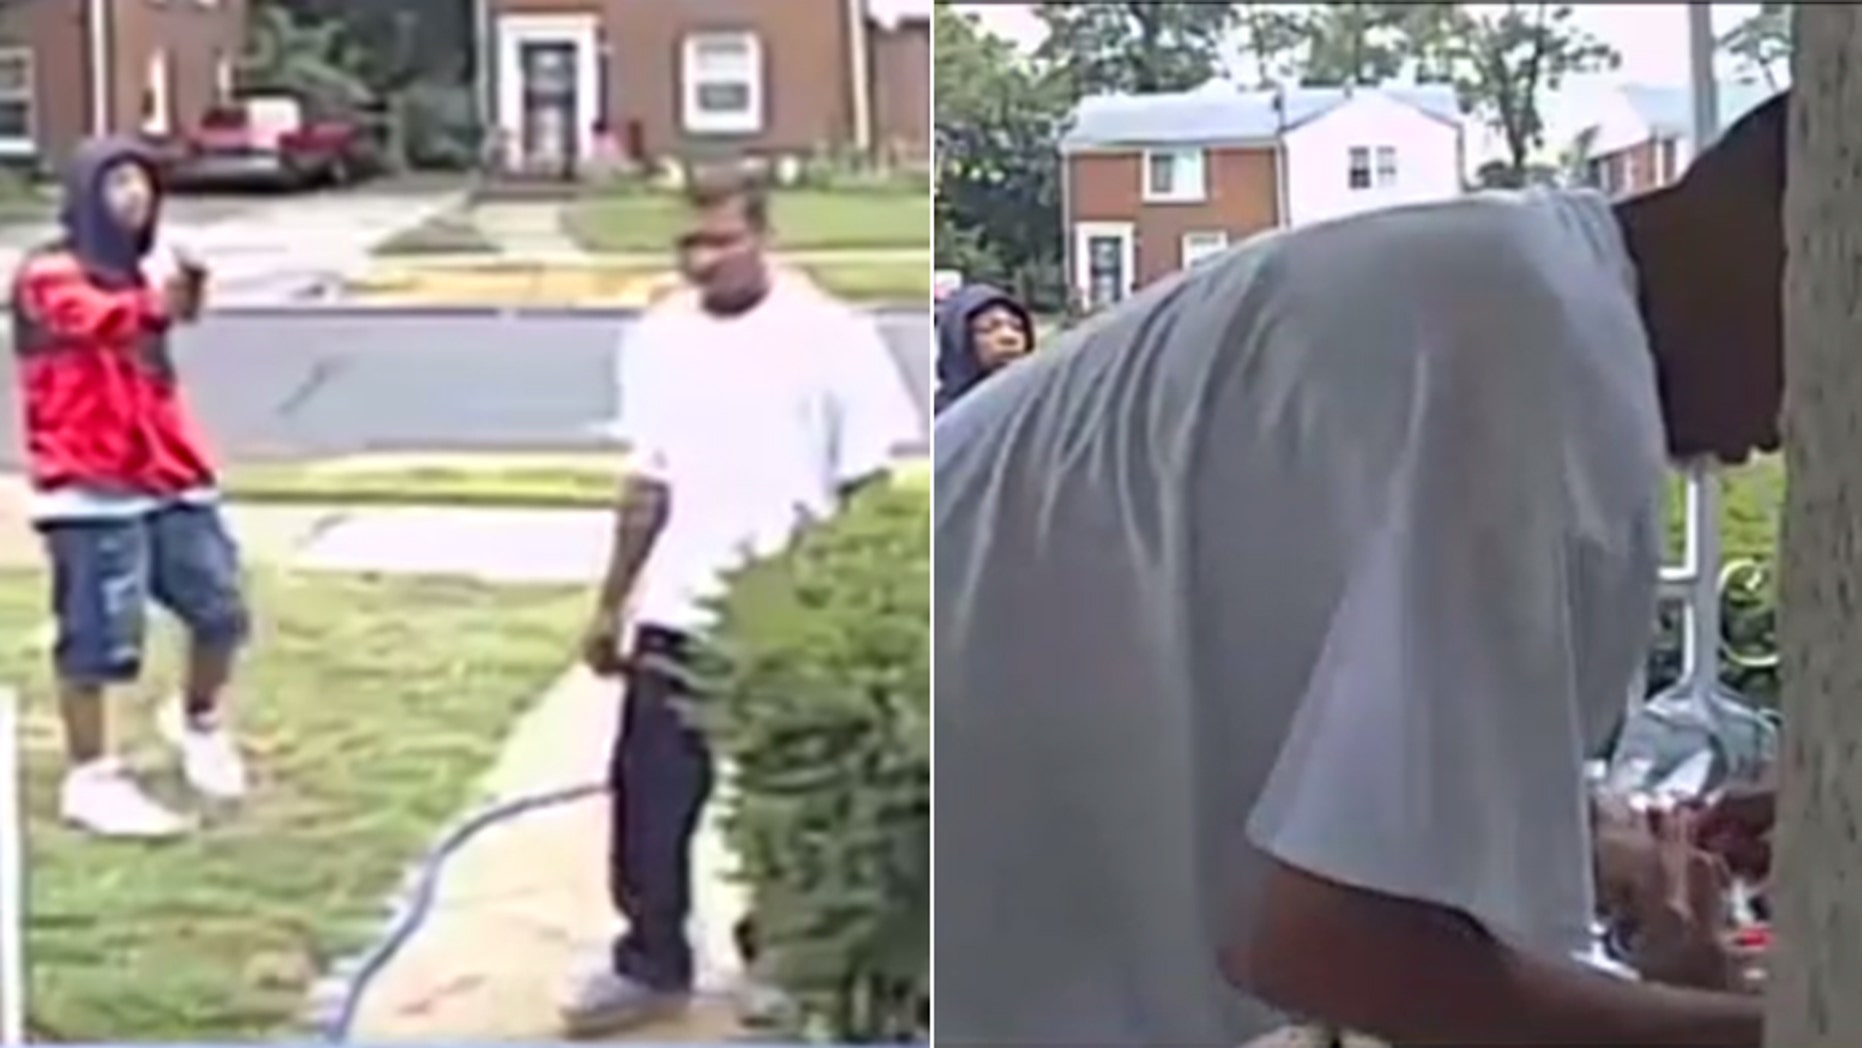 Surveillance footage captured two men targeting a Vietnam veteran outside of his home in Detroit.